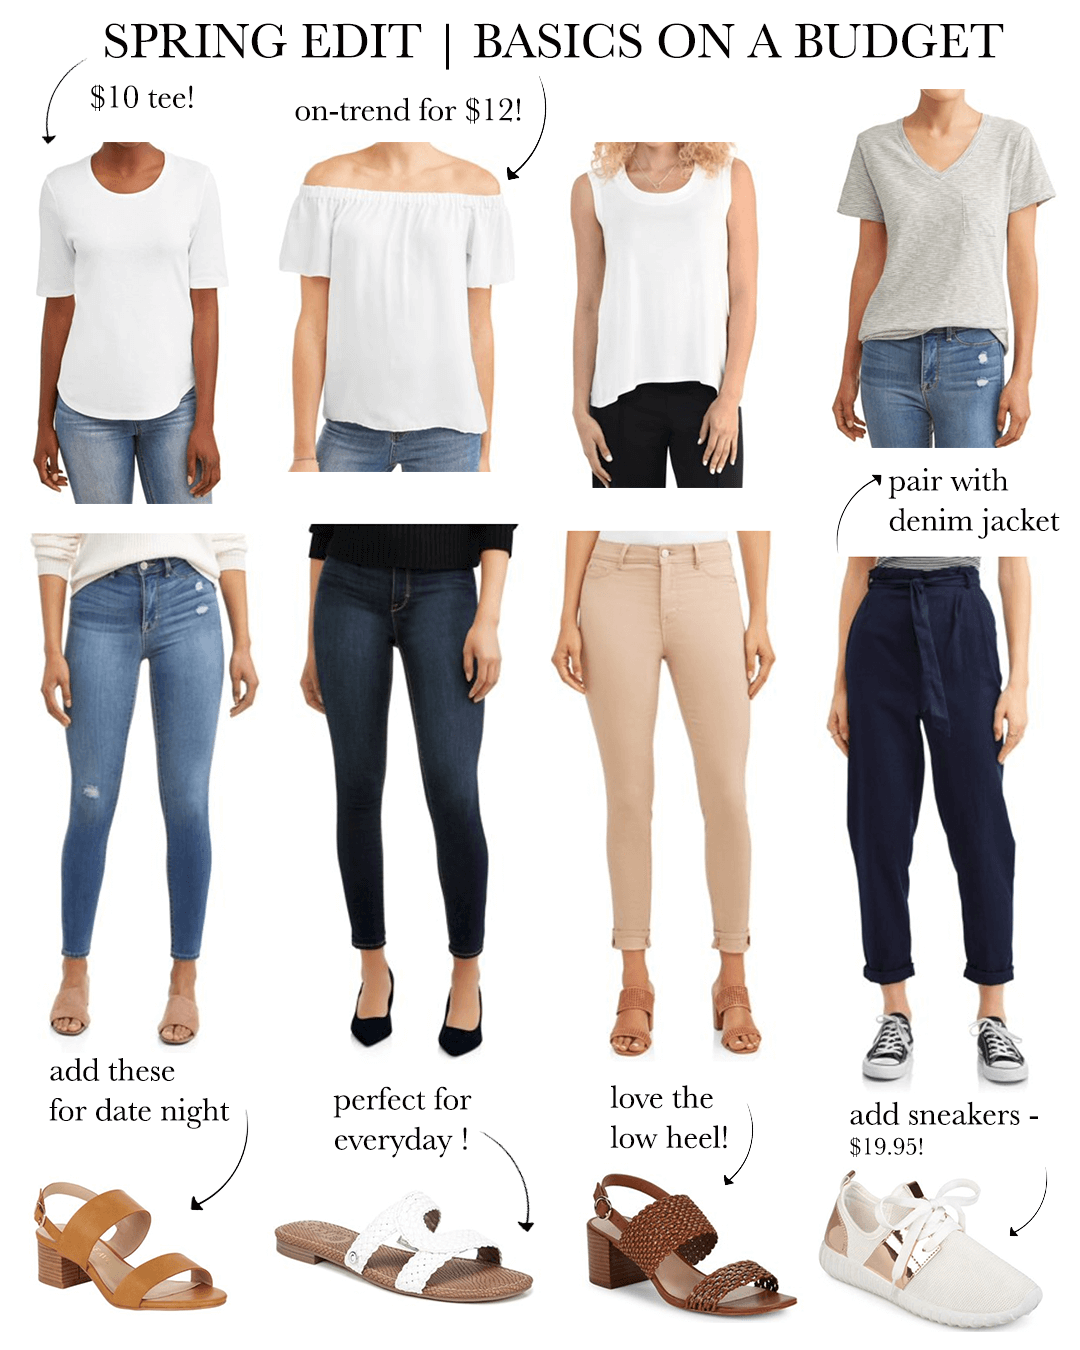 From Left to Right:  White Tee  |  Off-Shoulder Top  |  Tank  |  Grey Tee  |  Jeans  (same for all 3) |  Pants  |  Heels  |  Sandals  |  Heels  |  Sneakers